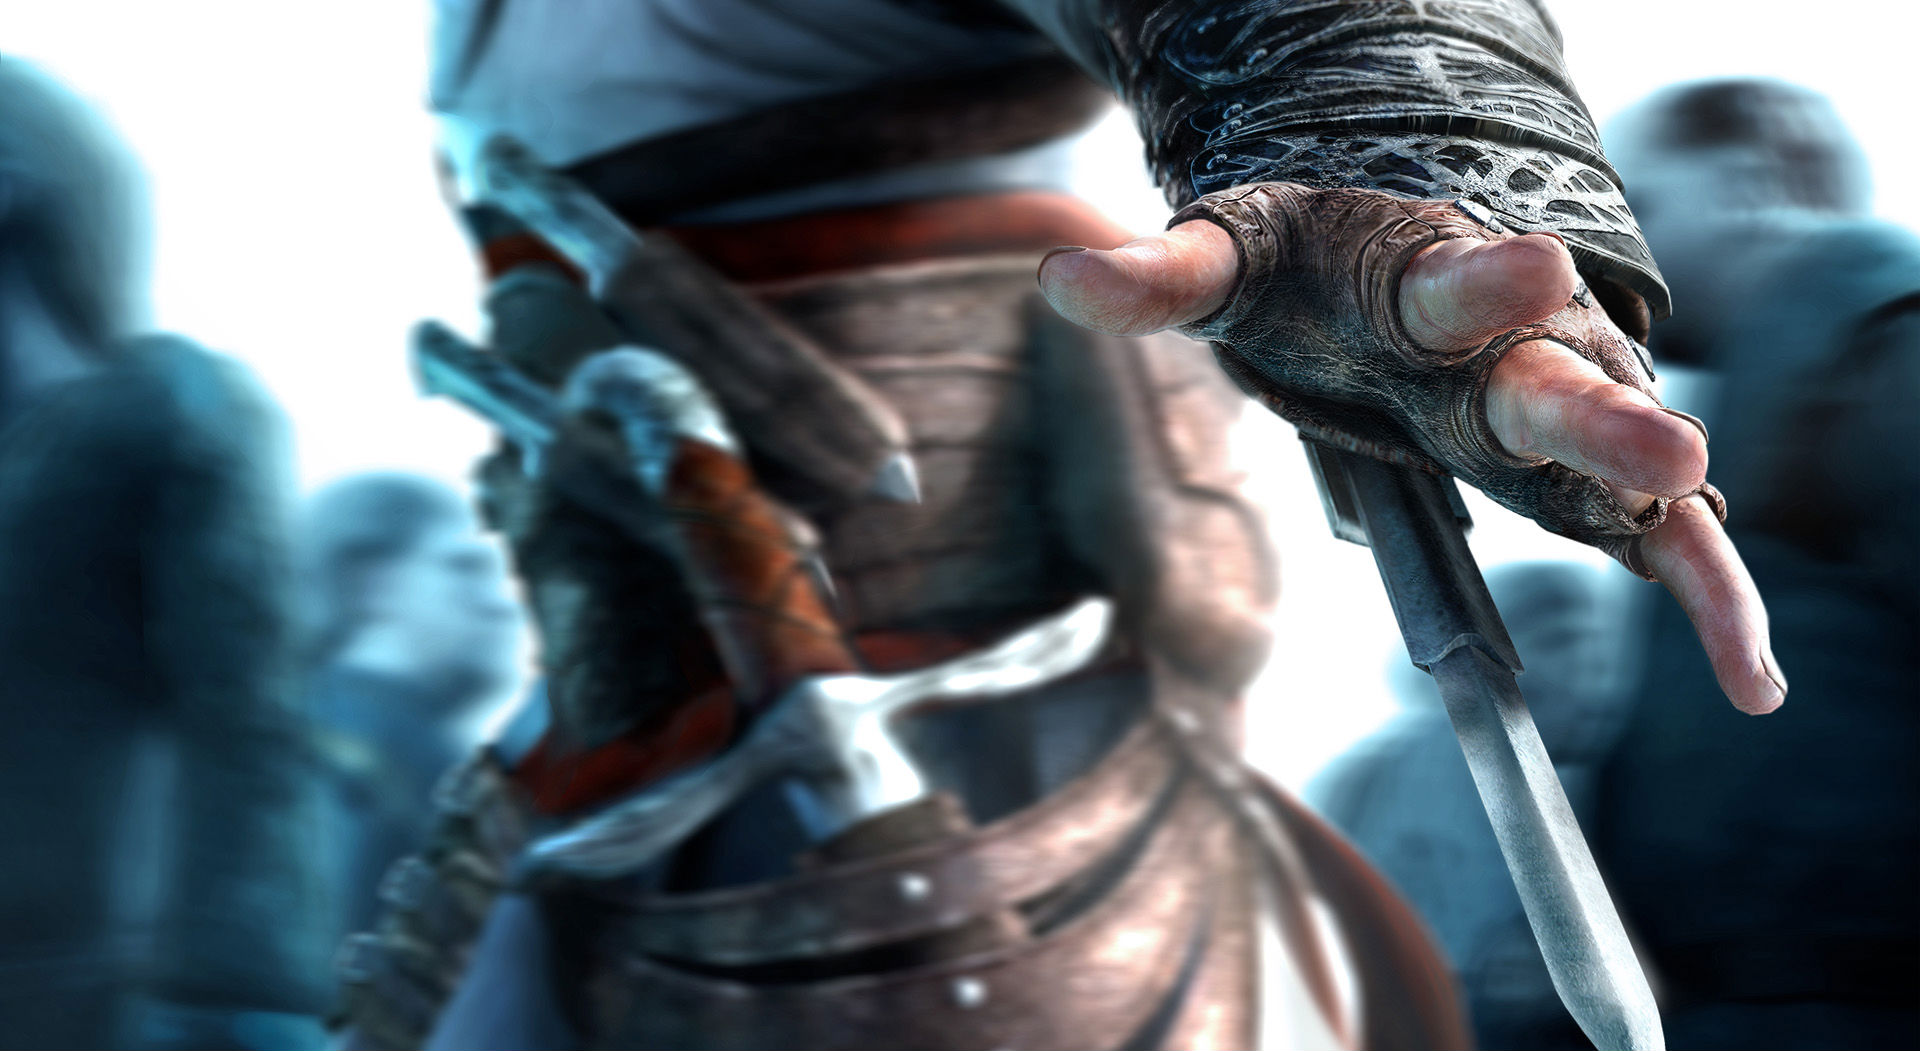 Video Game - Assassin's Creed Wallpaper